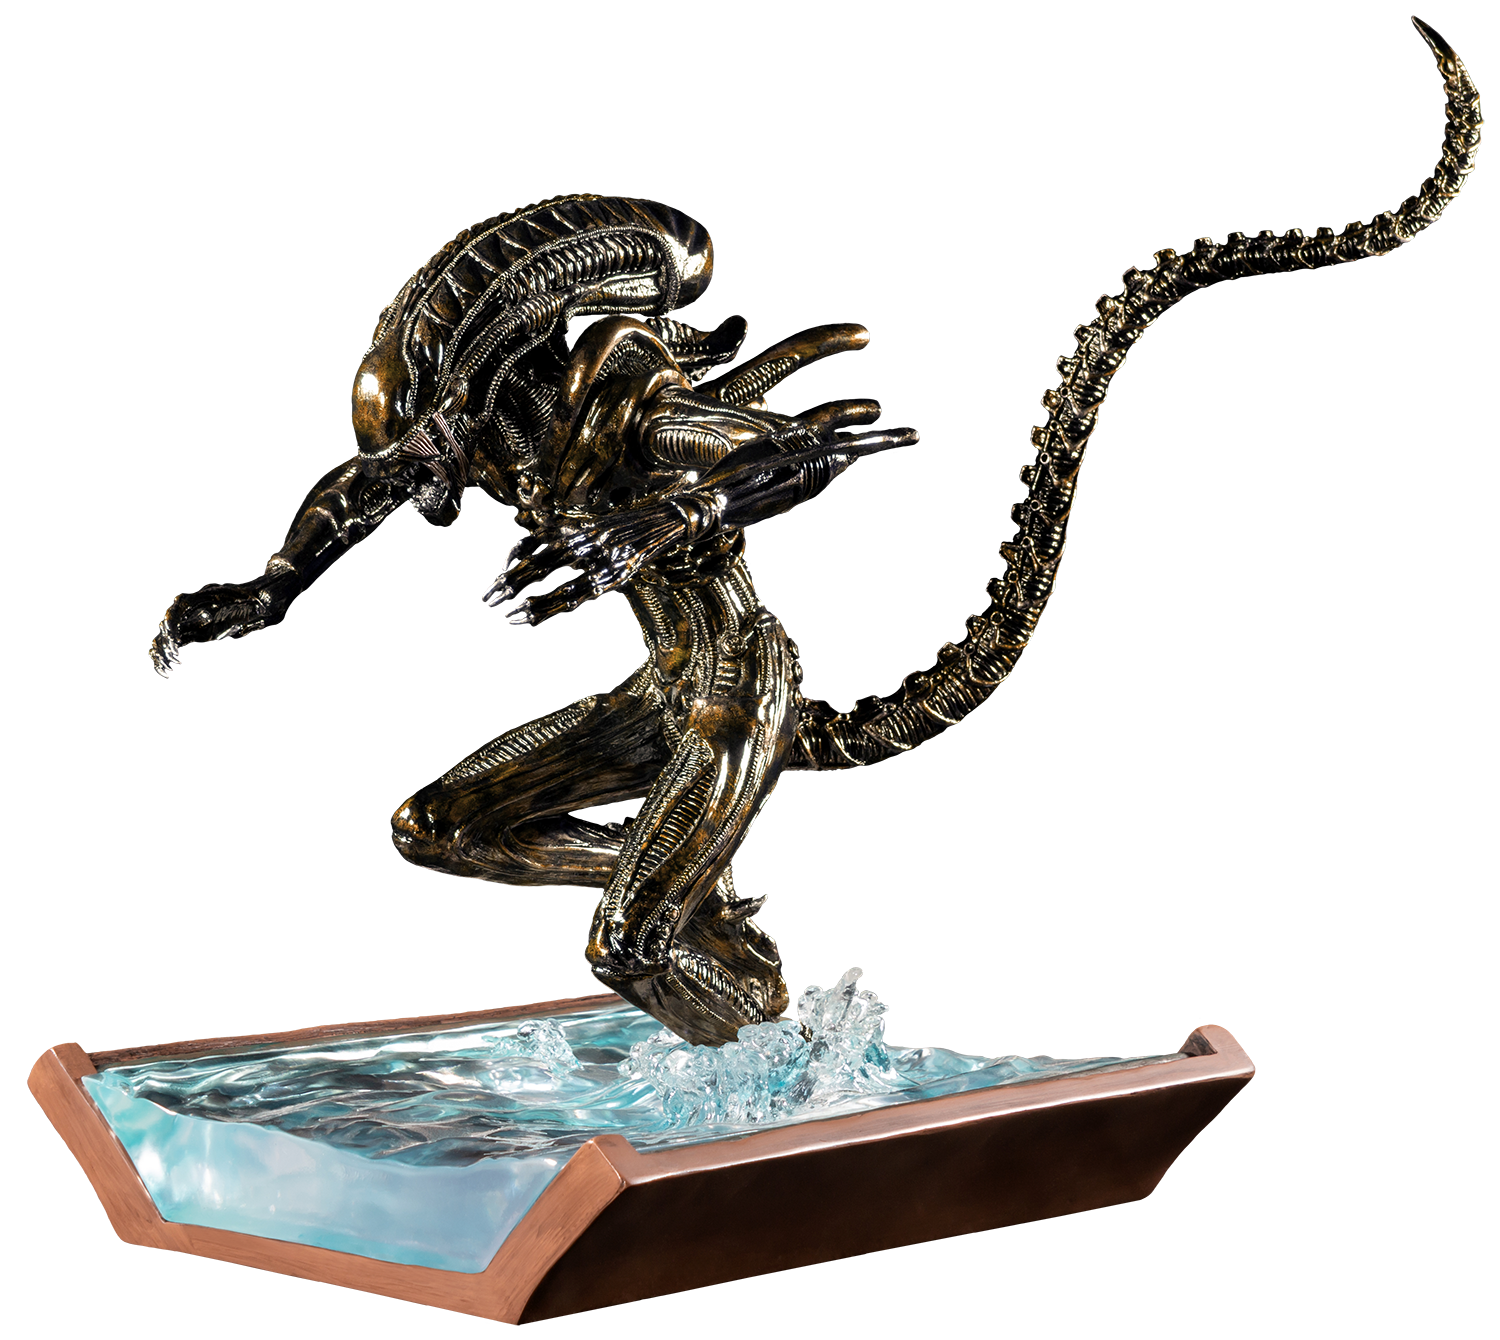 IKO1605-Alien-in-Water-Statue-New-Paint-3-308.png